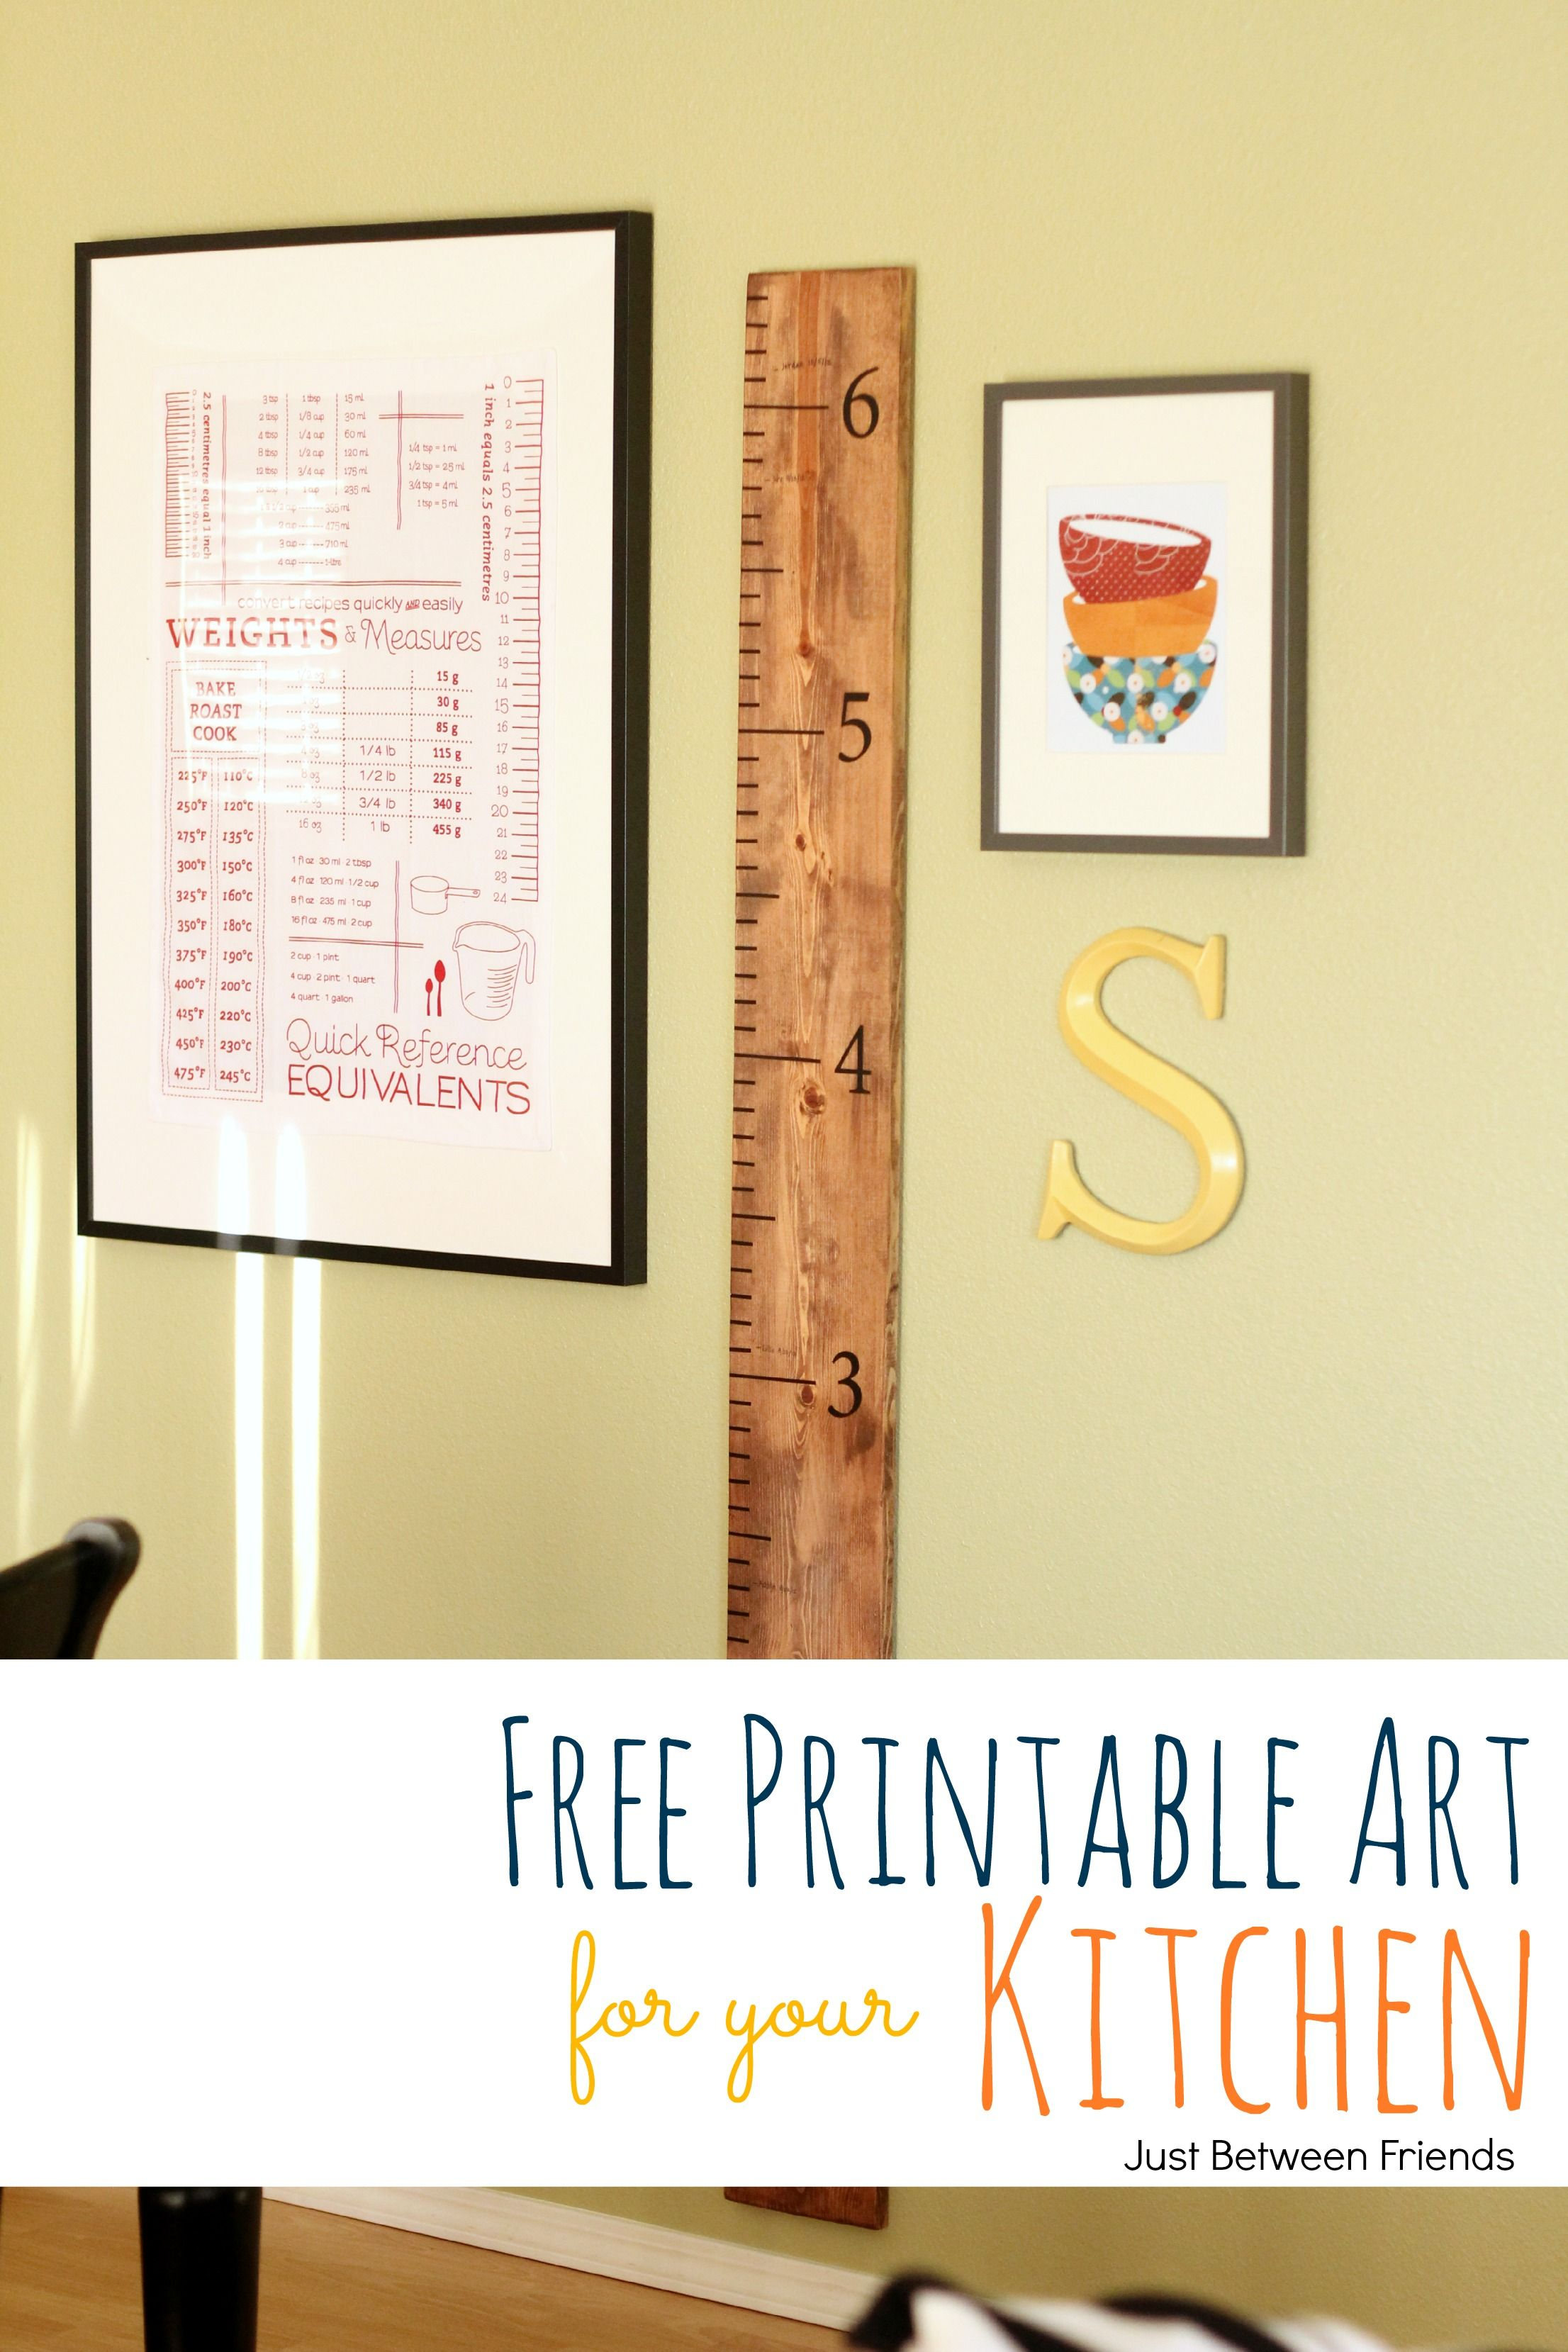 Kitchen Wall Art Printable | Printable wall art, Free printable and ...